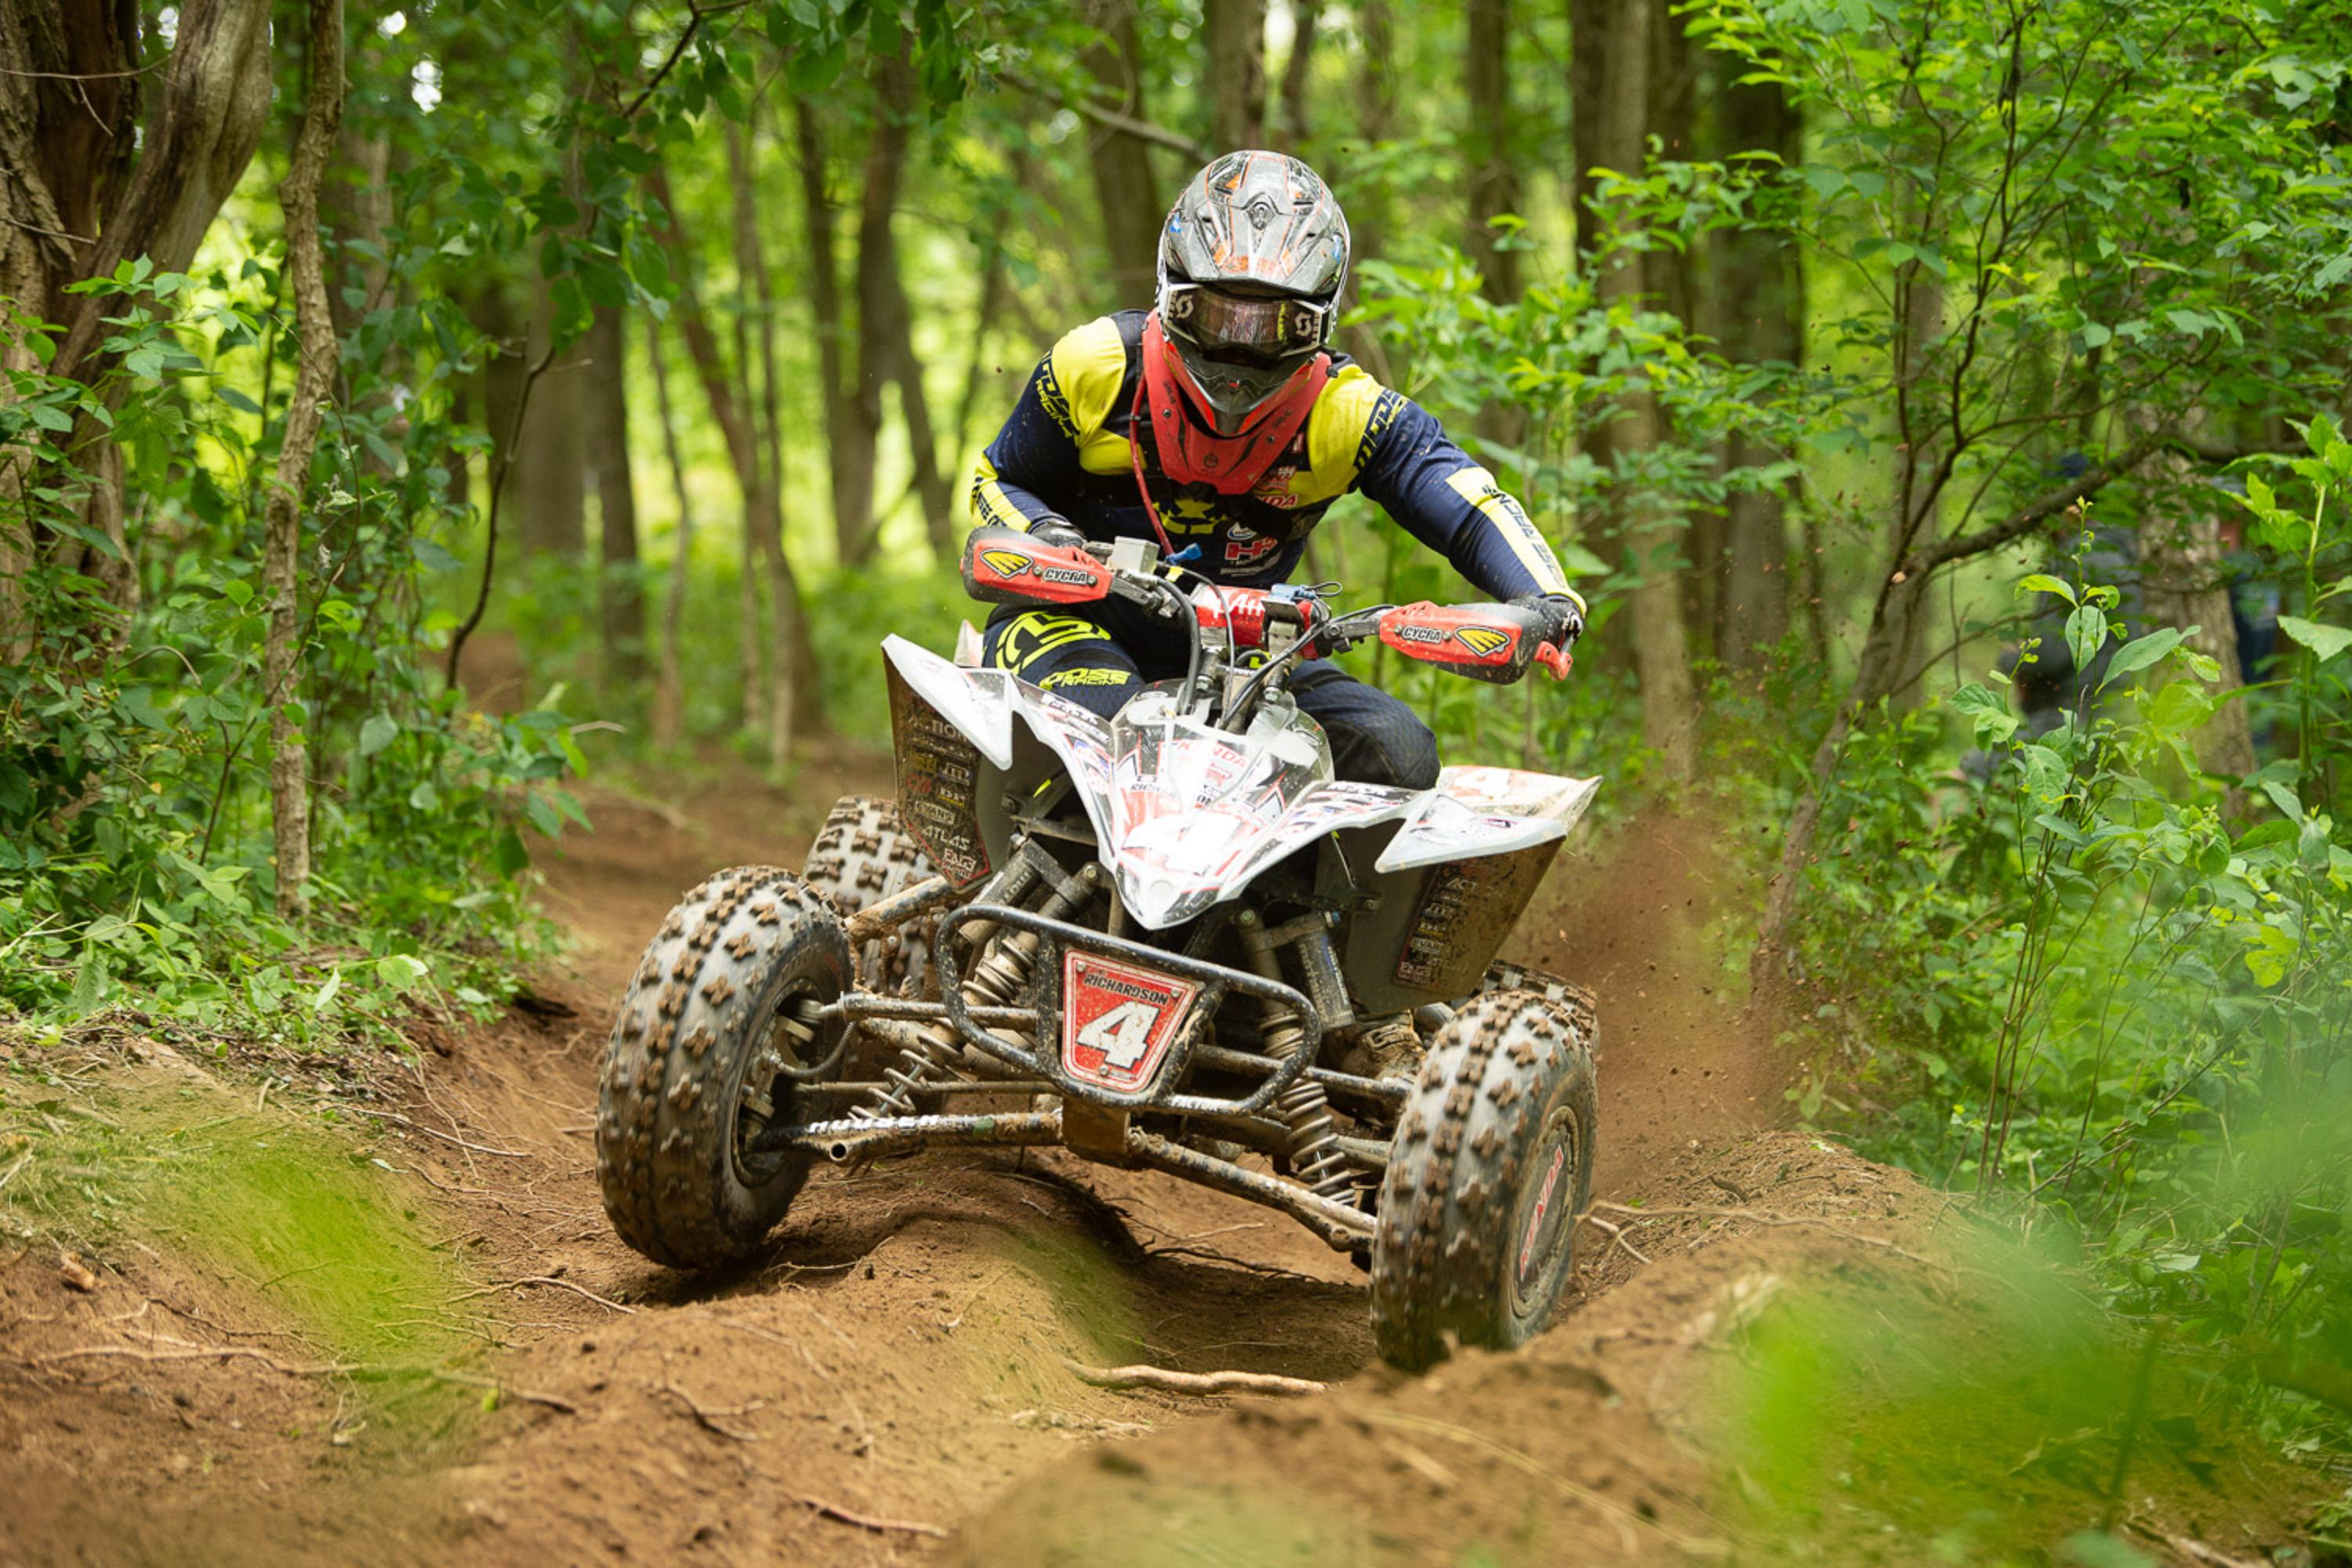 Tune-In Alert! 2020 High Point GNCC ATV Race on MAVTV